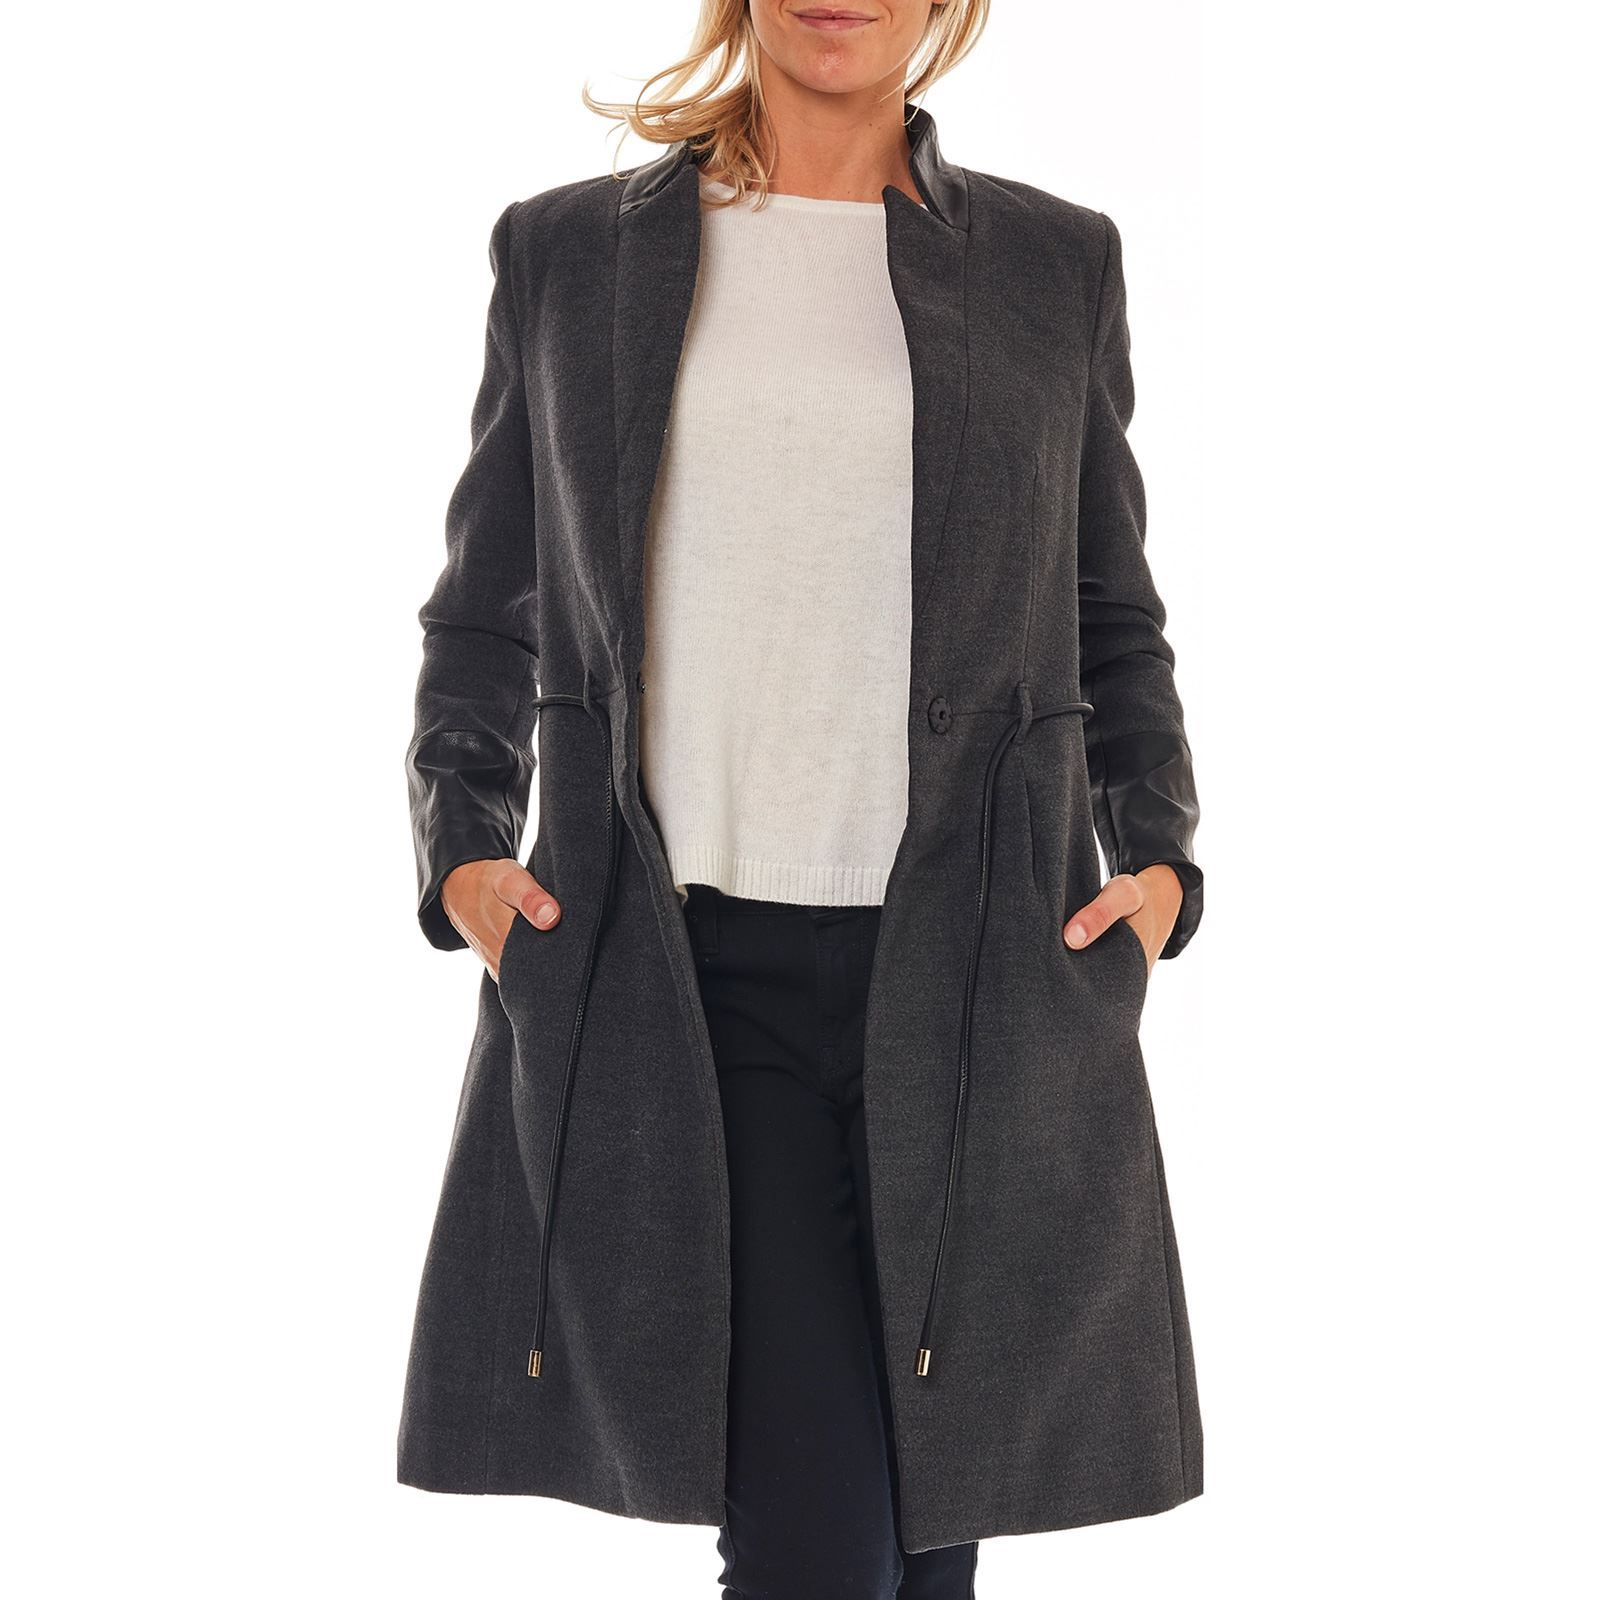 new style f5253 83d50 Molly Bracken Cappotto - grigio scuro | BrandAlley